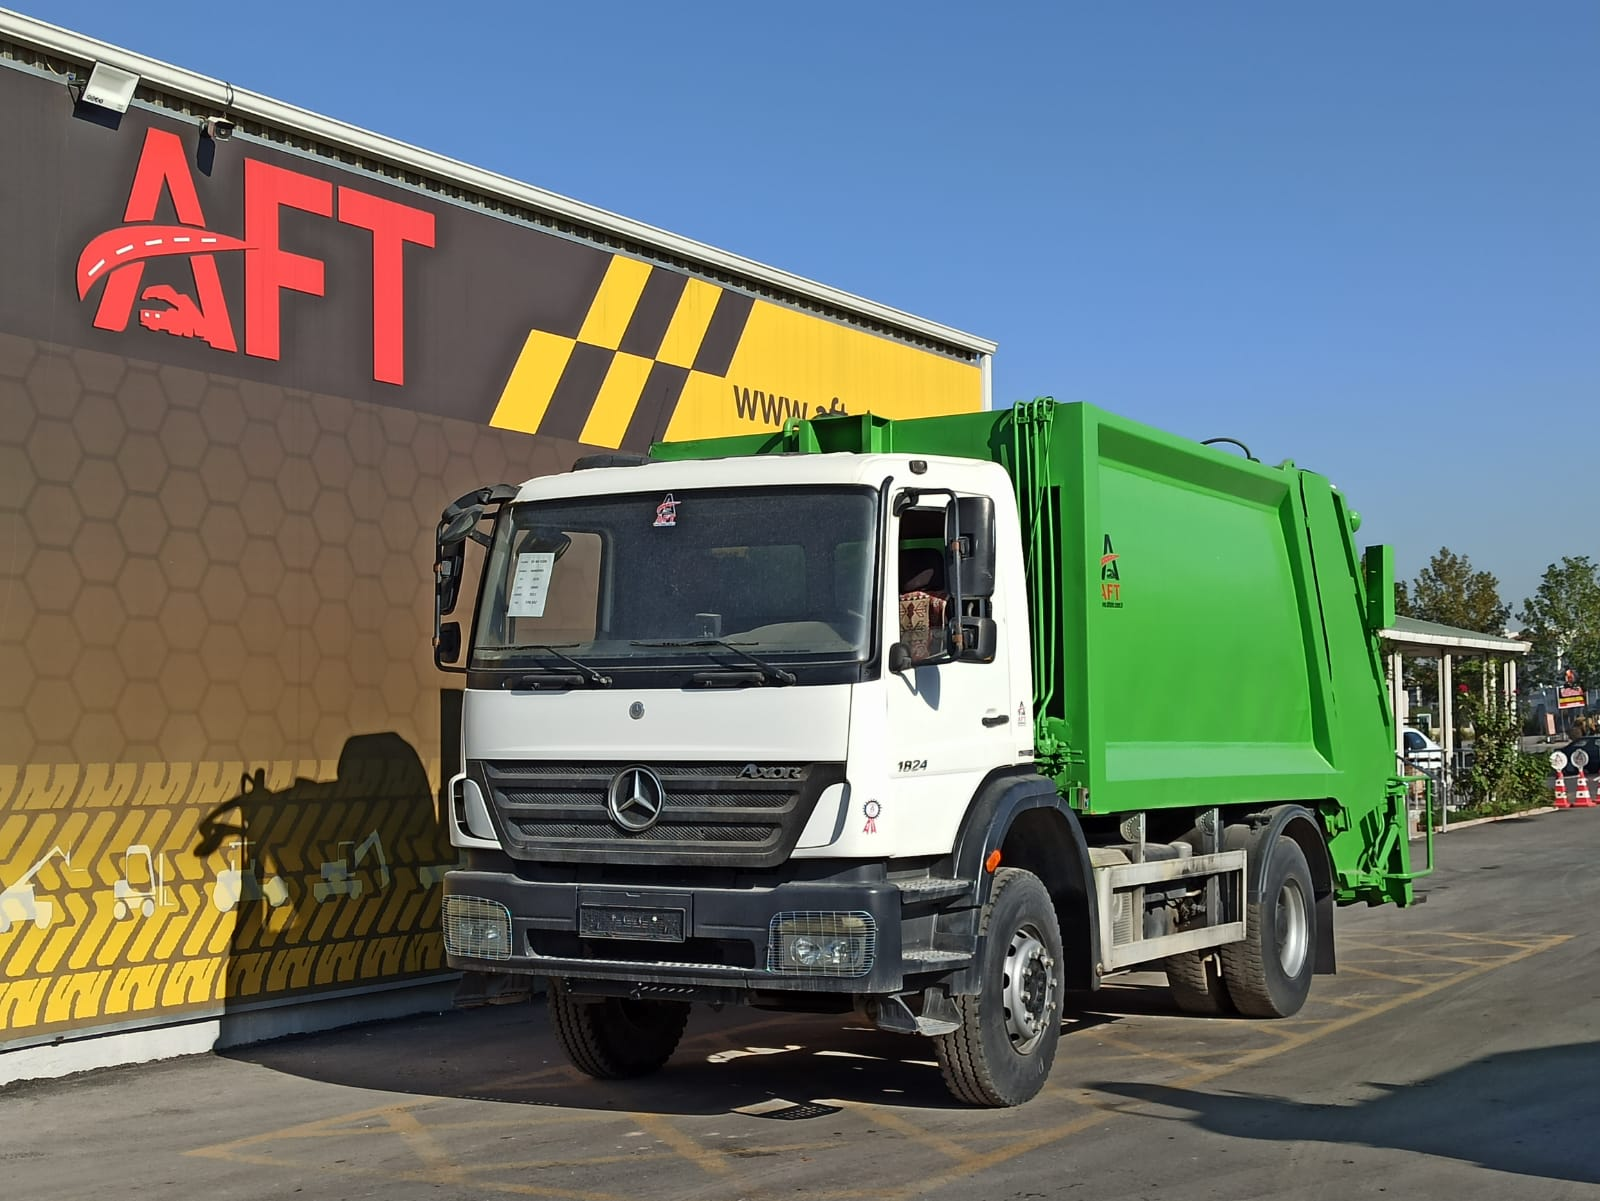 2011 MODEL MERCEDES AXOR 1824 E4 4X2 GARBAGE TRUCK